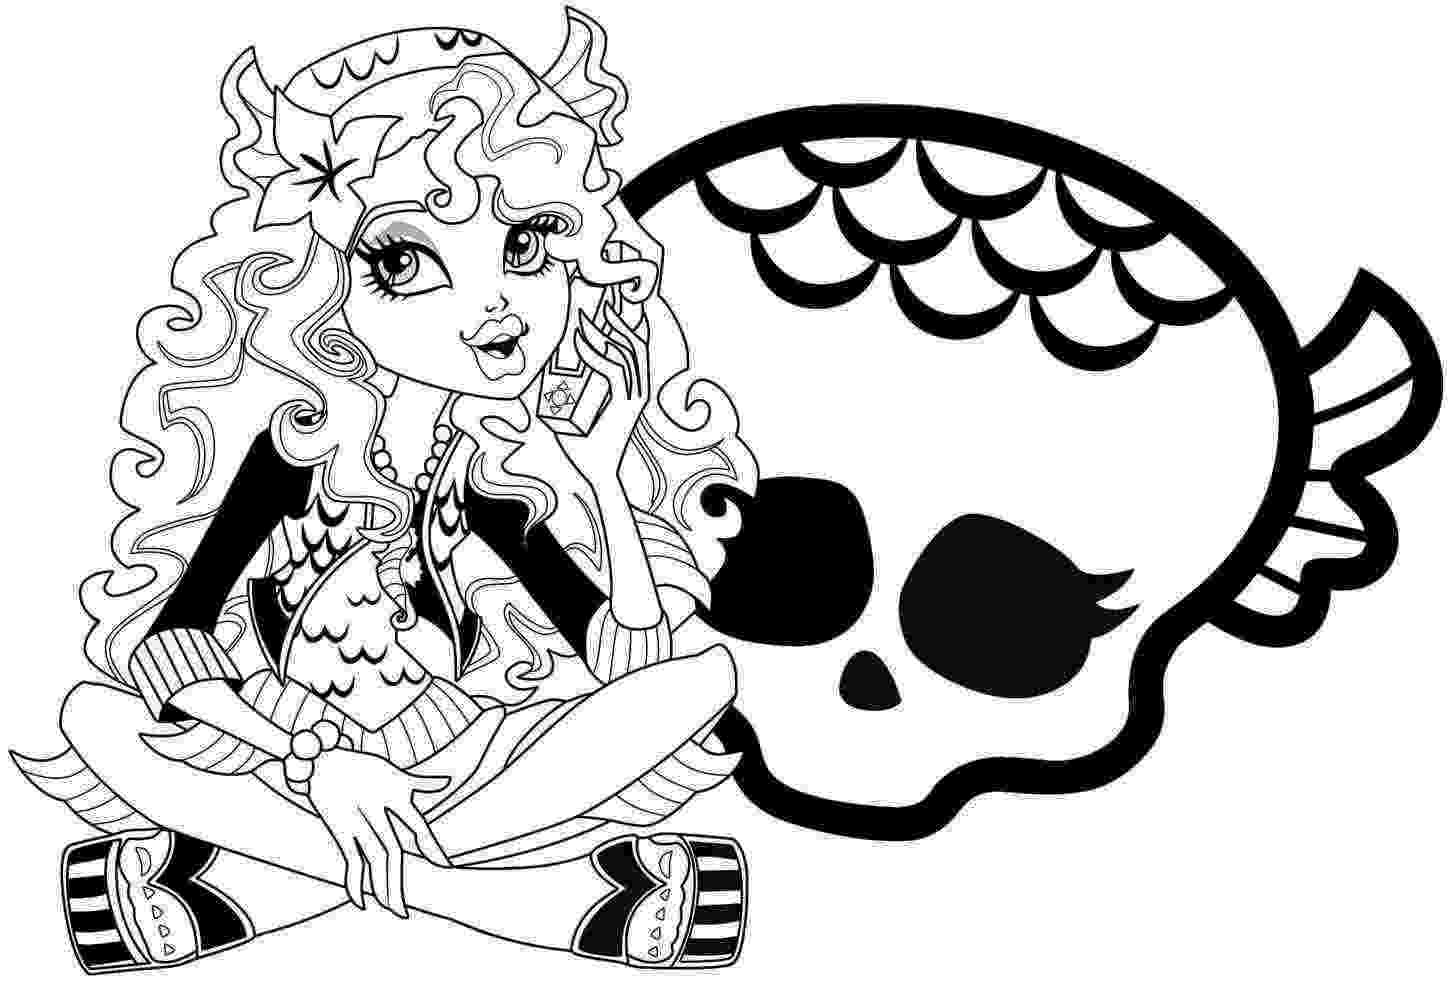 monster high free colouring pages coloring pages monster high coloring pages free and printable monster high colouring free pages